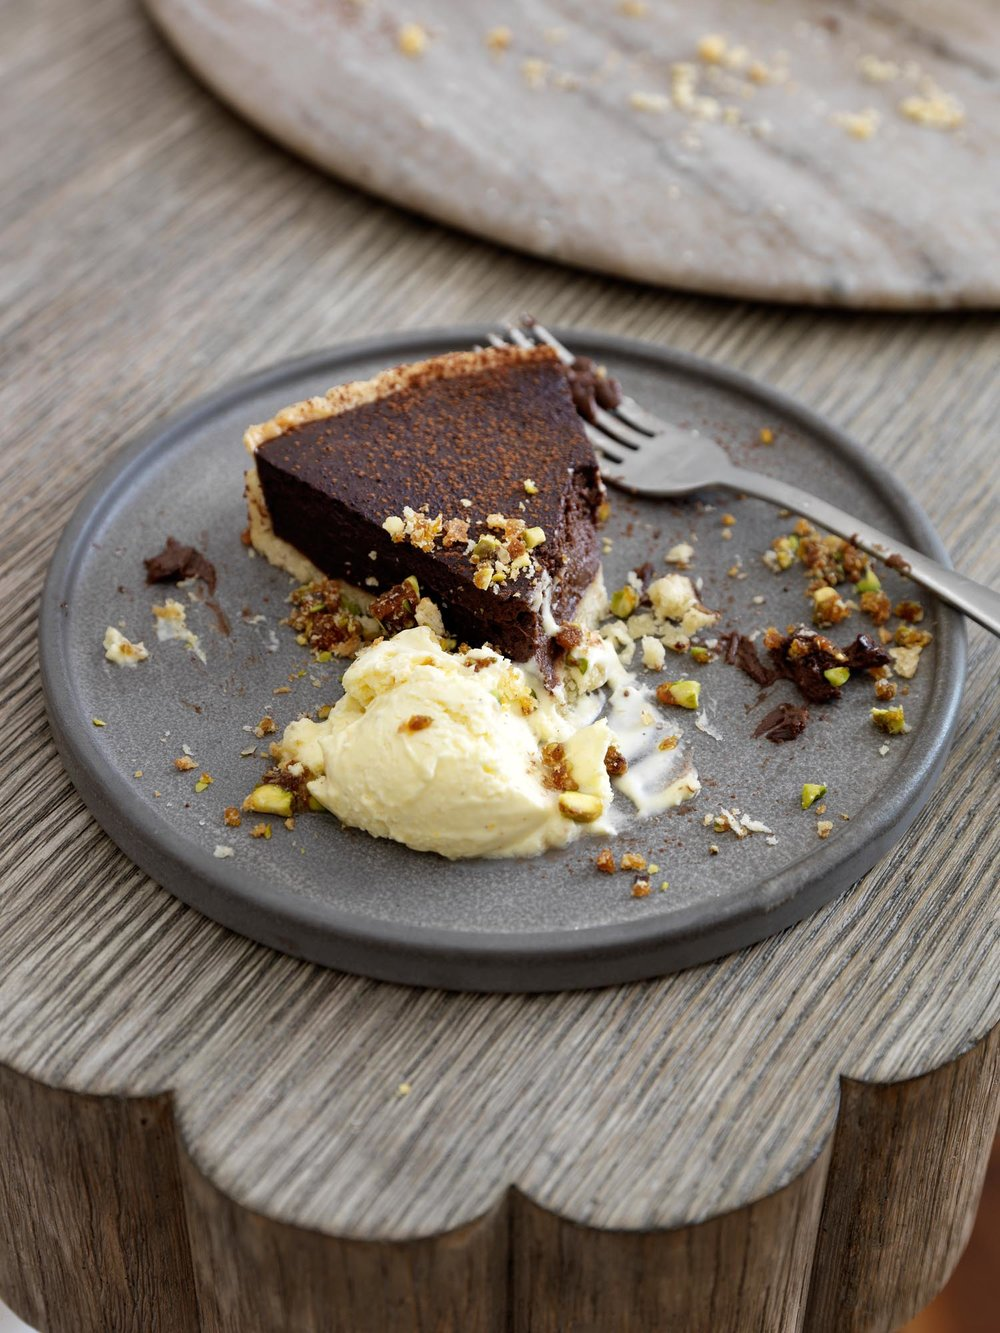 38.HomesAndGardensJan17SimonBrownMarinaFilippelliAliBrownFestiveEntertainingChocolateTart.jpg